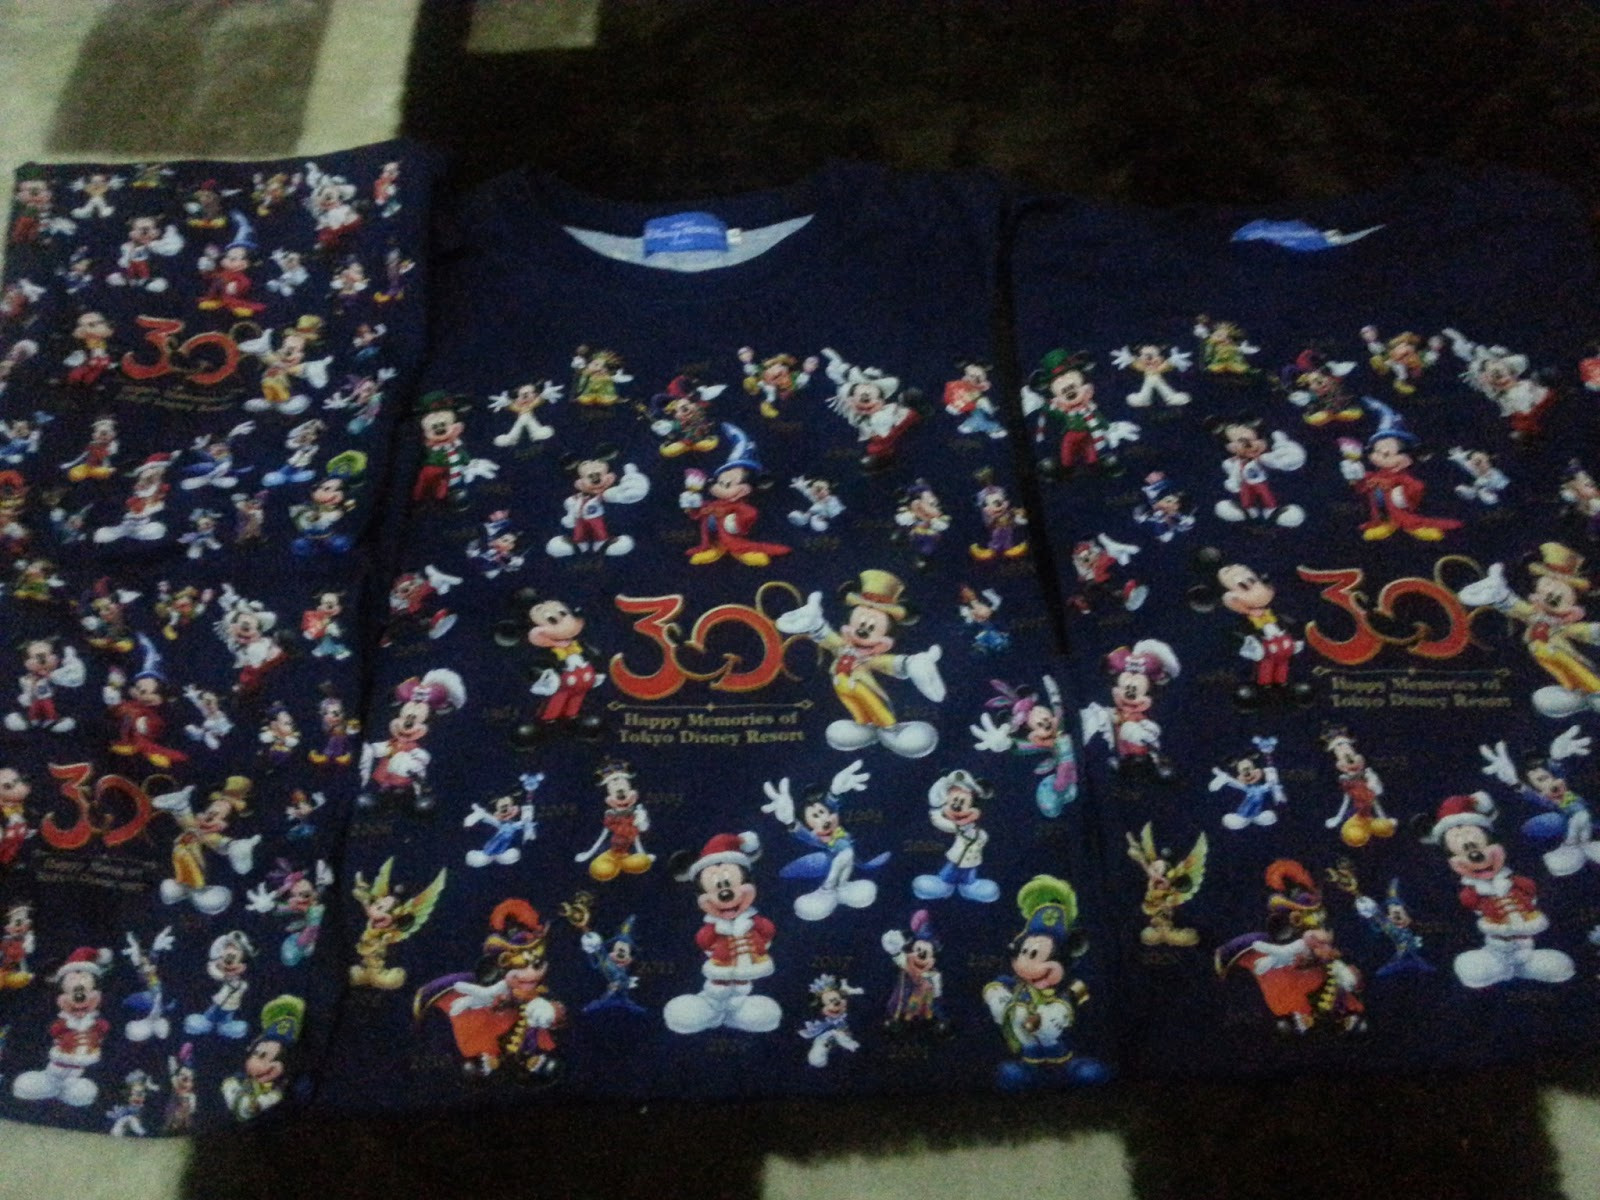 Shirt design cost - And We Also Went To Uniqlo The Design Is So Cute And The Price Is Cheaper Compare To Malaysia We Manage To Buy A Few Things T Shirt For Kids Is About